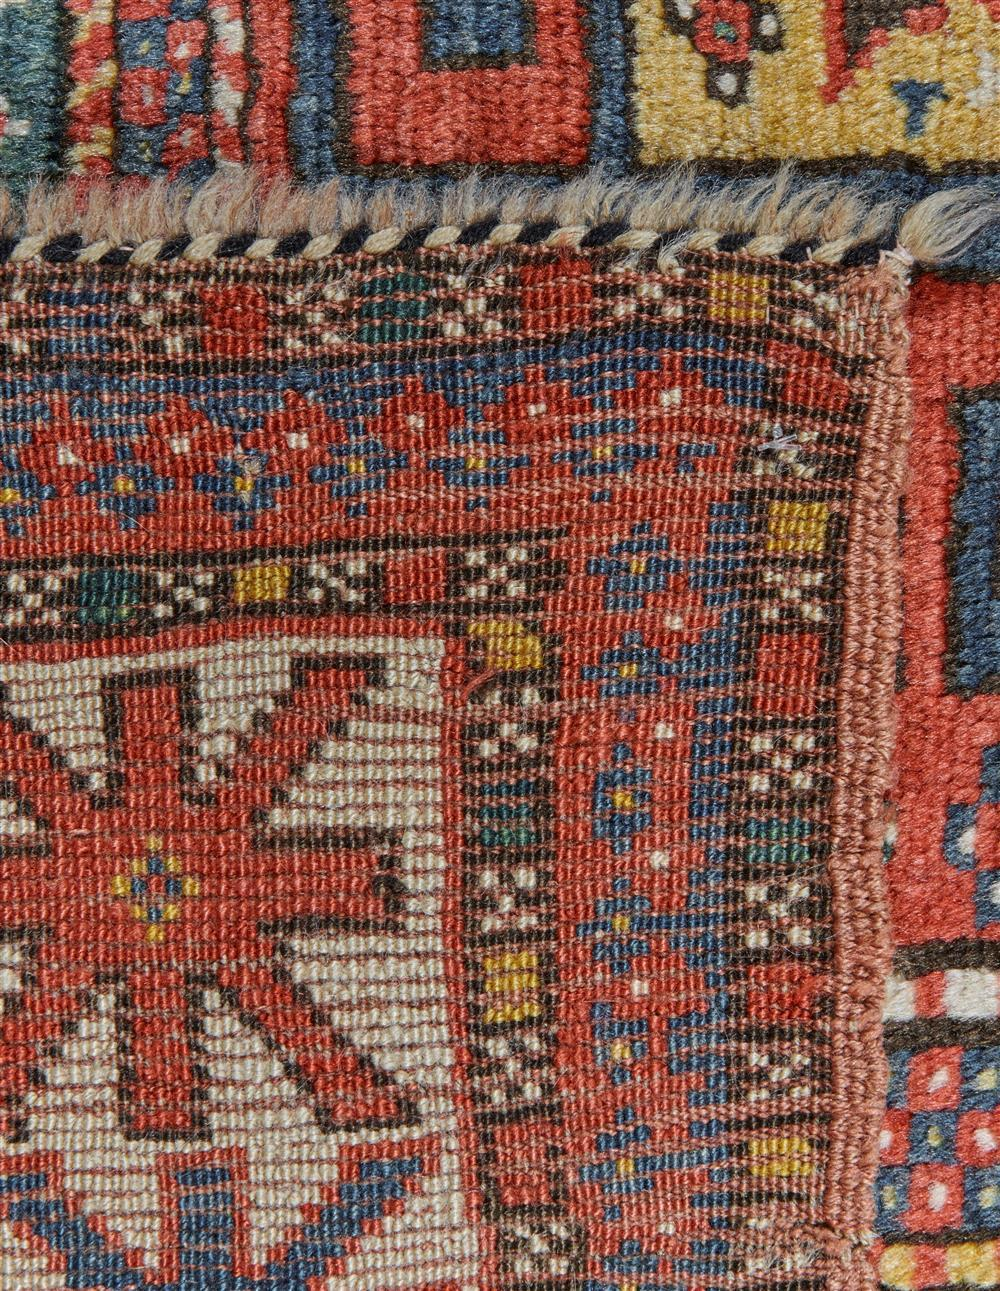 Caucasian Rug, dated 1891; 6 ft. 4 in. x 4 ft.